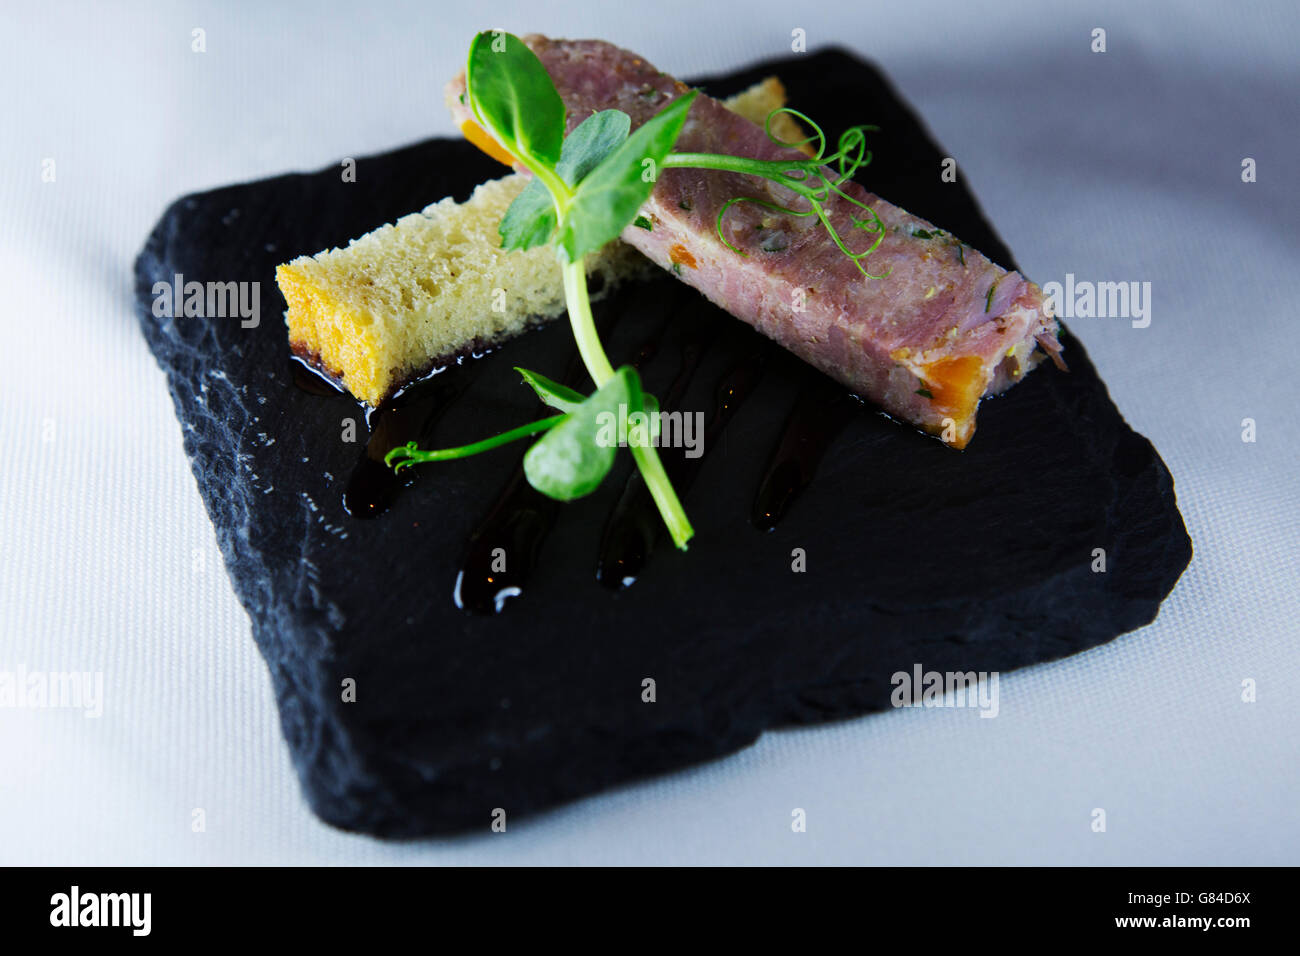 An amuse-bouche of ham hock served on slate served in Northumberland, England. - Stock Image